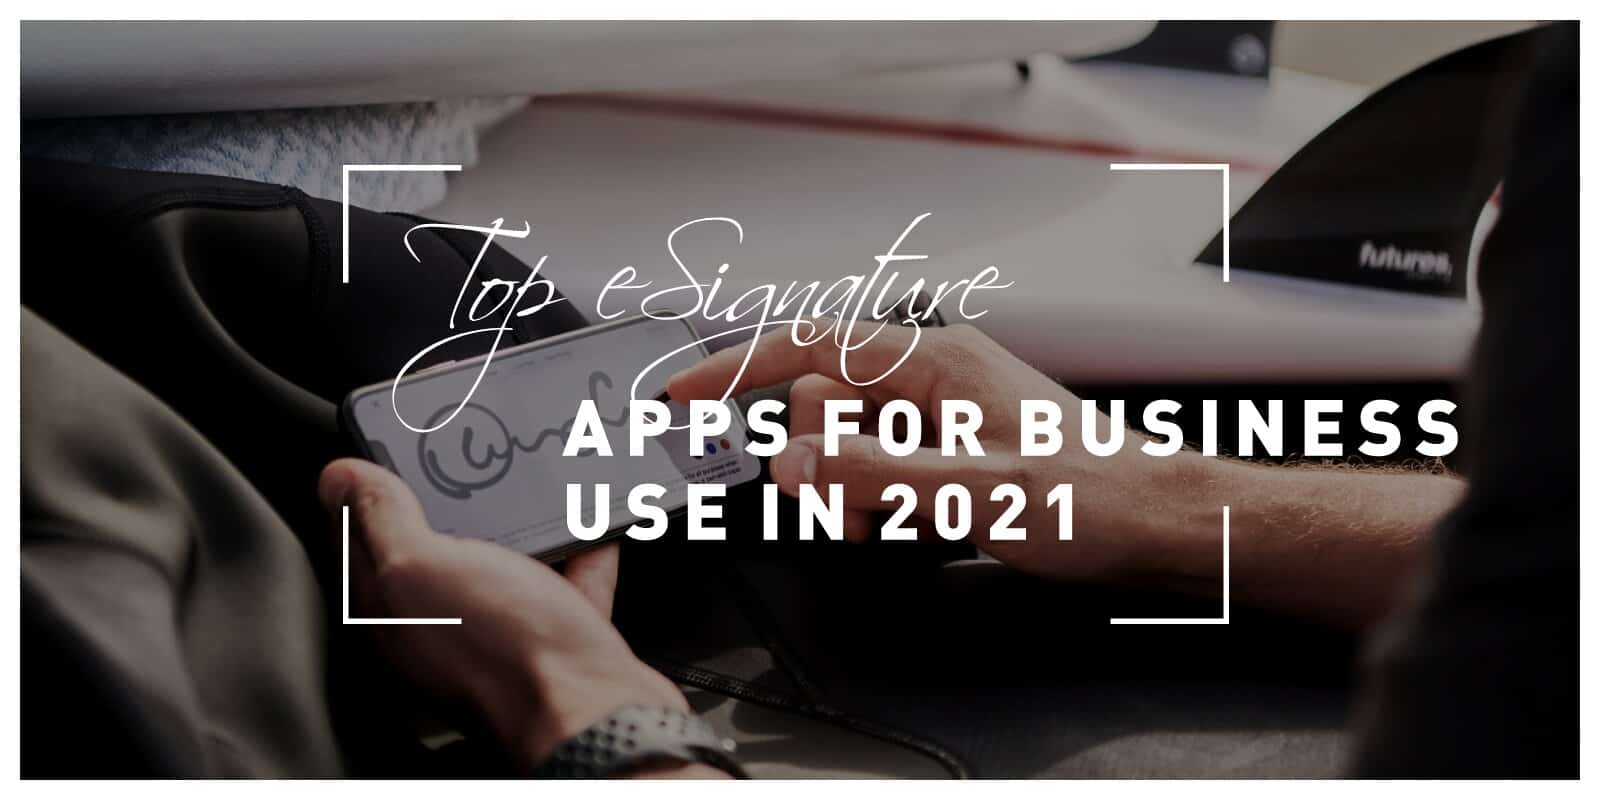 Top 5 eSignature Apps for Business Use in 2021